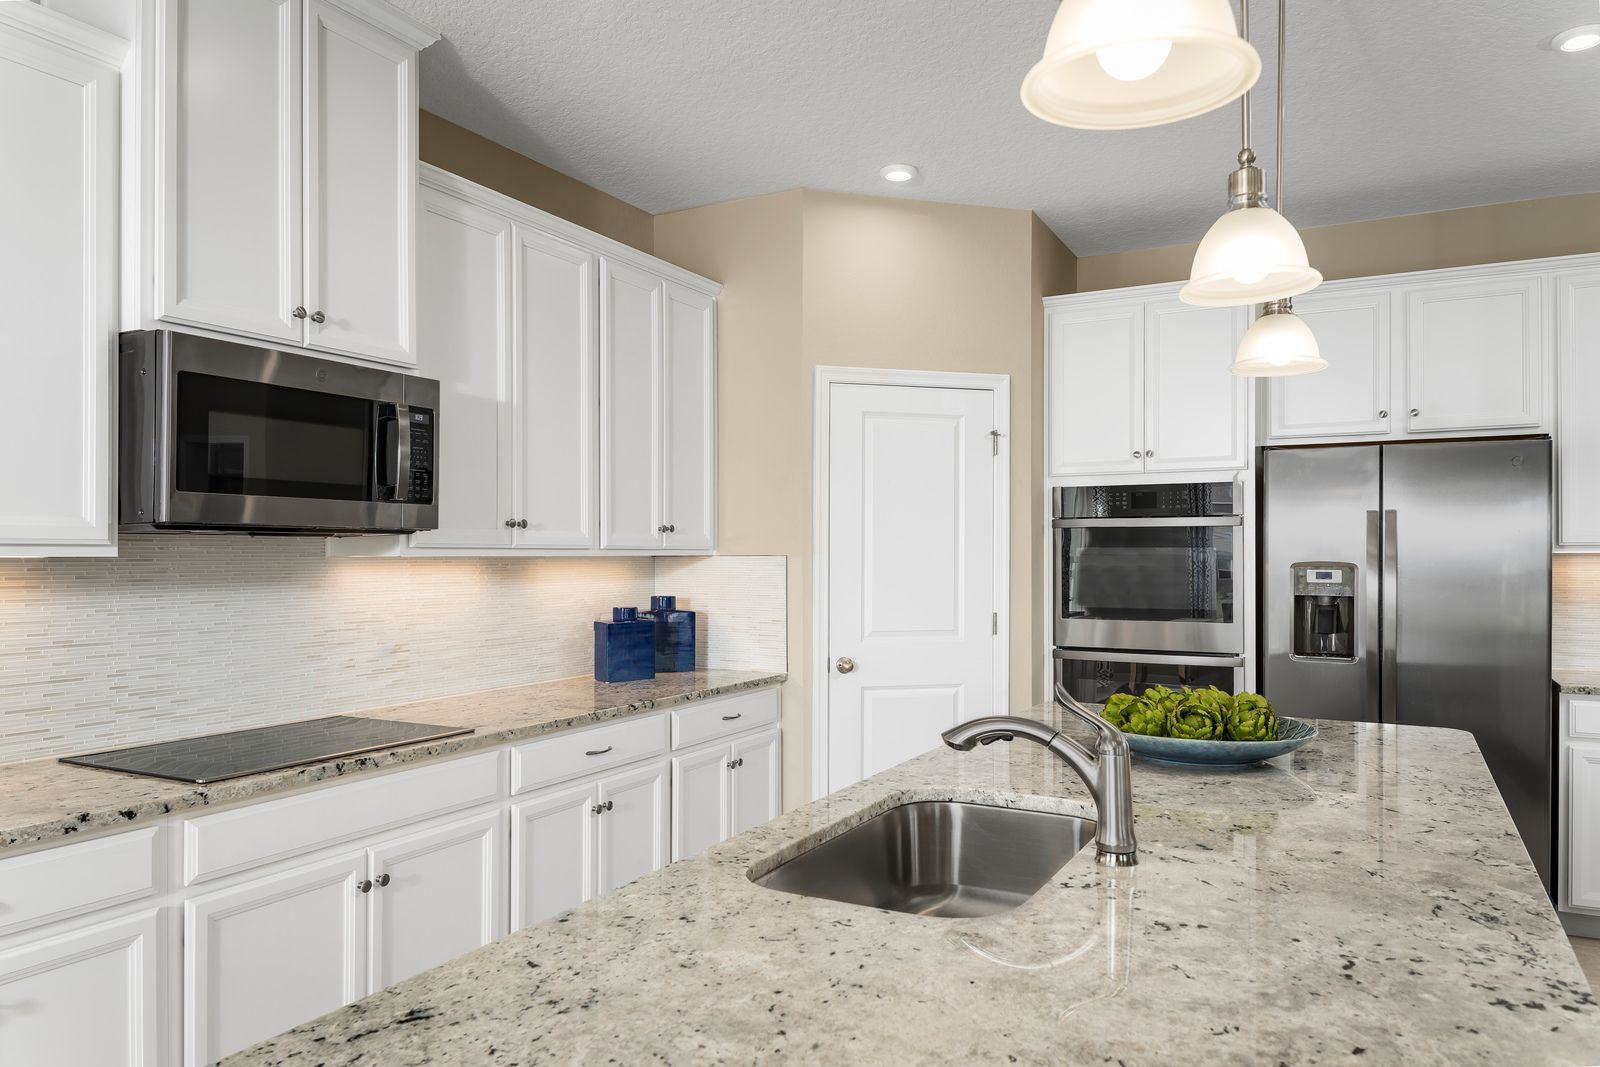 Kitchen featured in the Lynn Haven By Ryan Homes in Orlando, FL